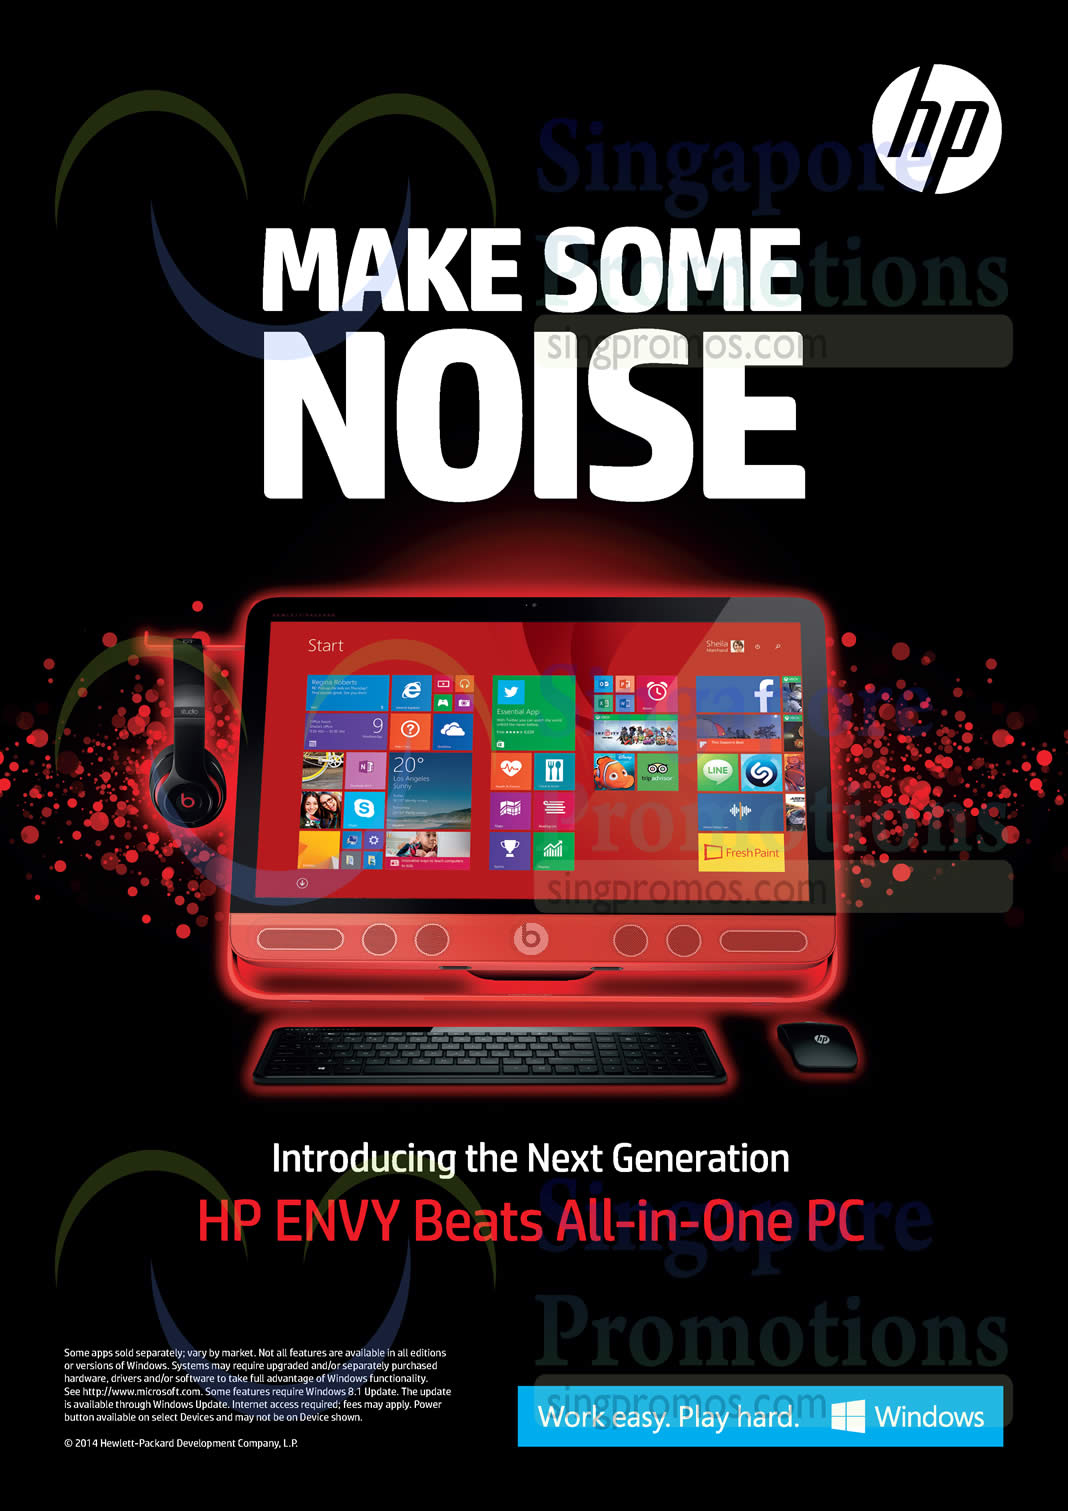 HP Envy Beats AIO Desktop PC